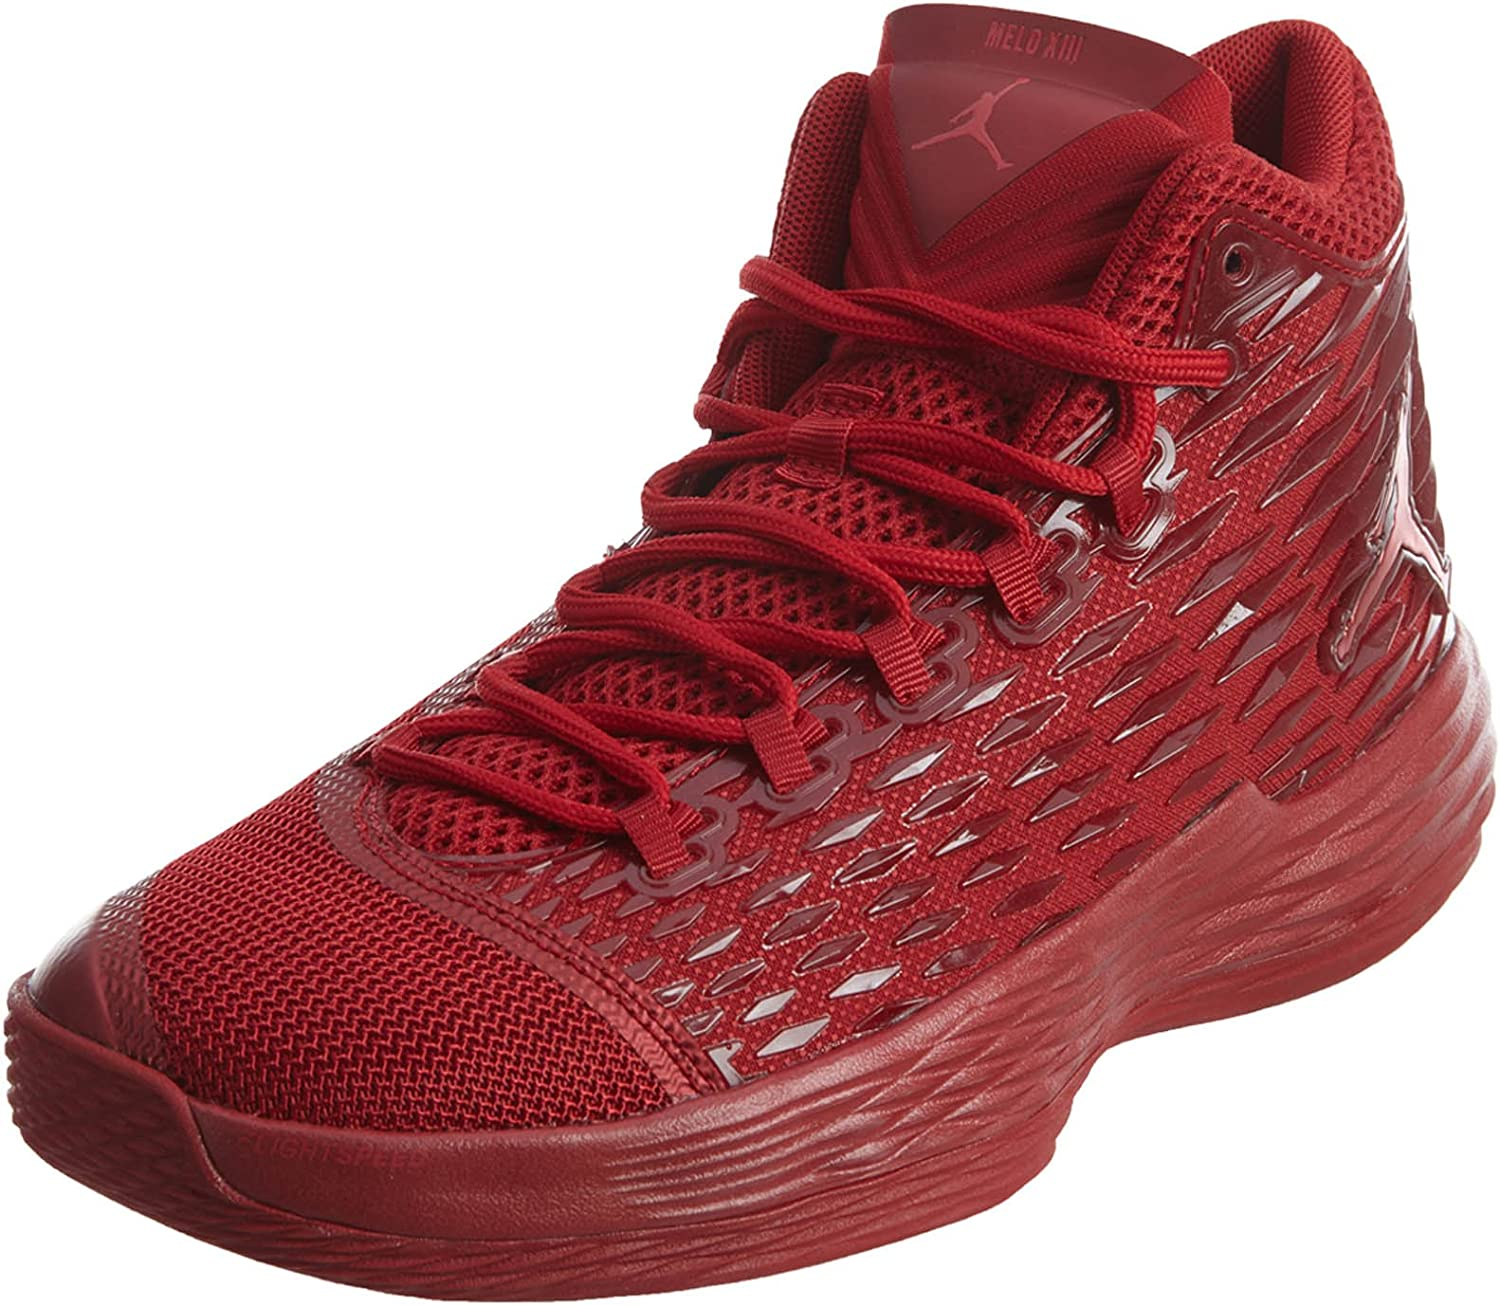 Jordan Melo M13 Mens basketball-shoes 881562-618_10.5 - Gym Red Gym Red-Black